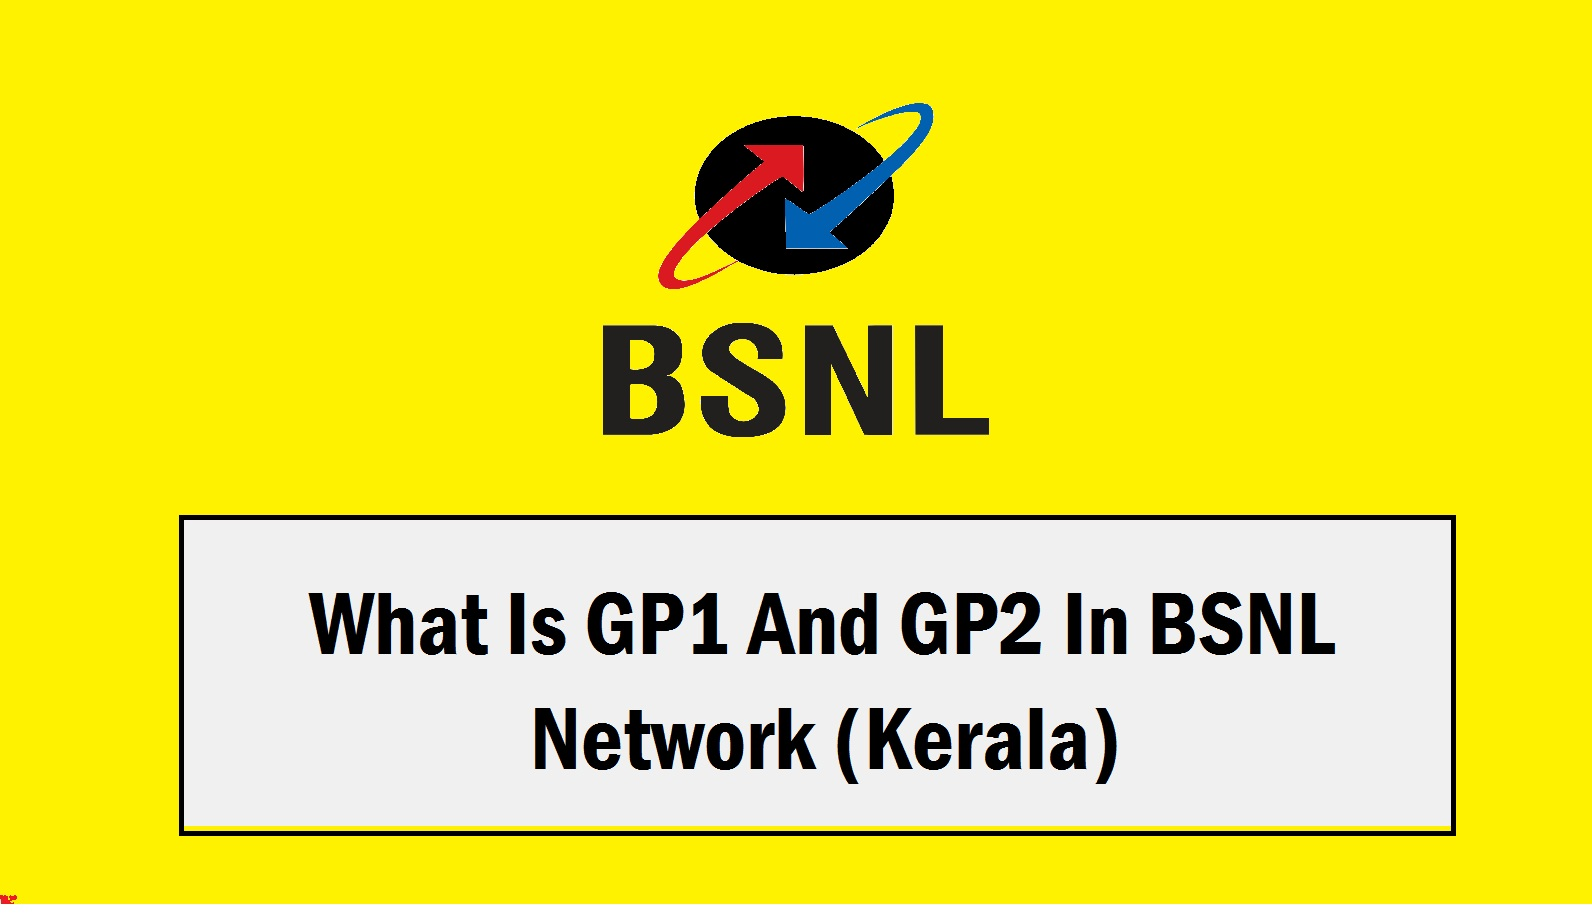 What Is GP1 And GP2